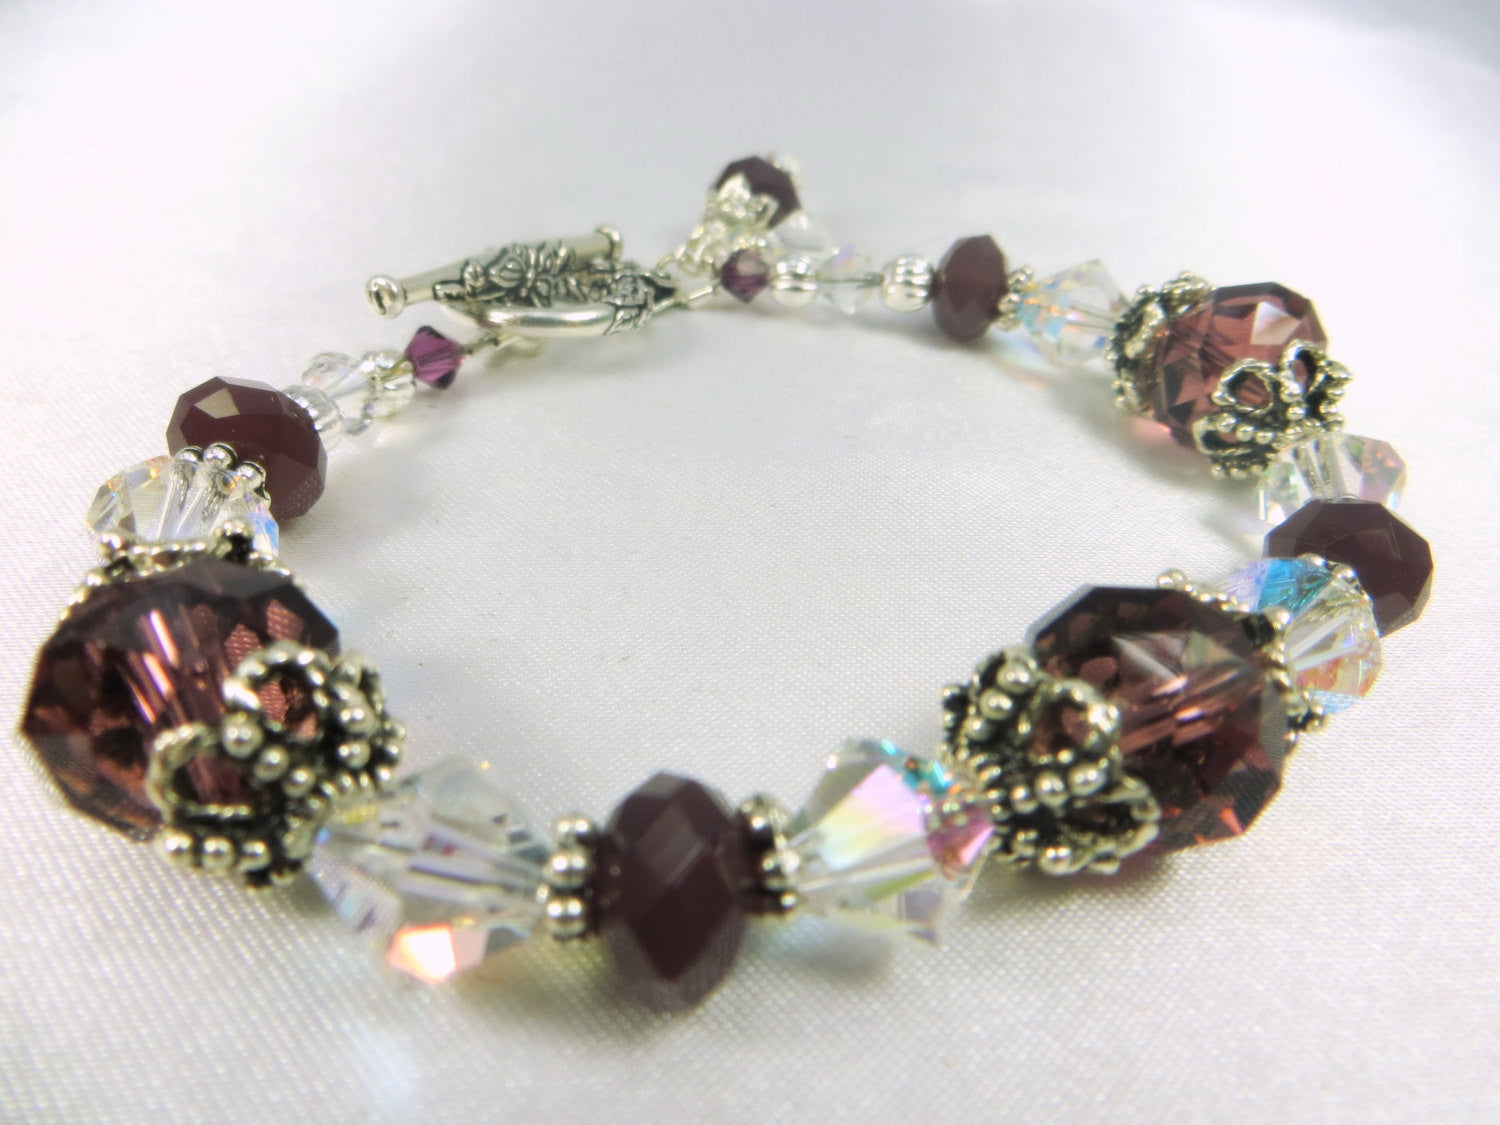 Plum Purple Crystal AB Bracelet with Silver Butterfly Toggle Clasp - Odyssey Creations